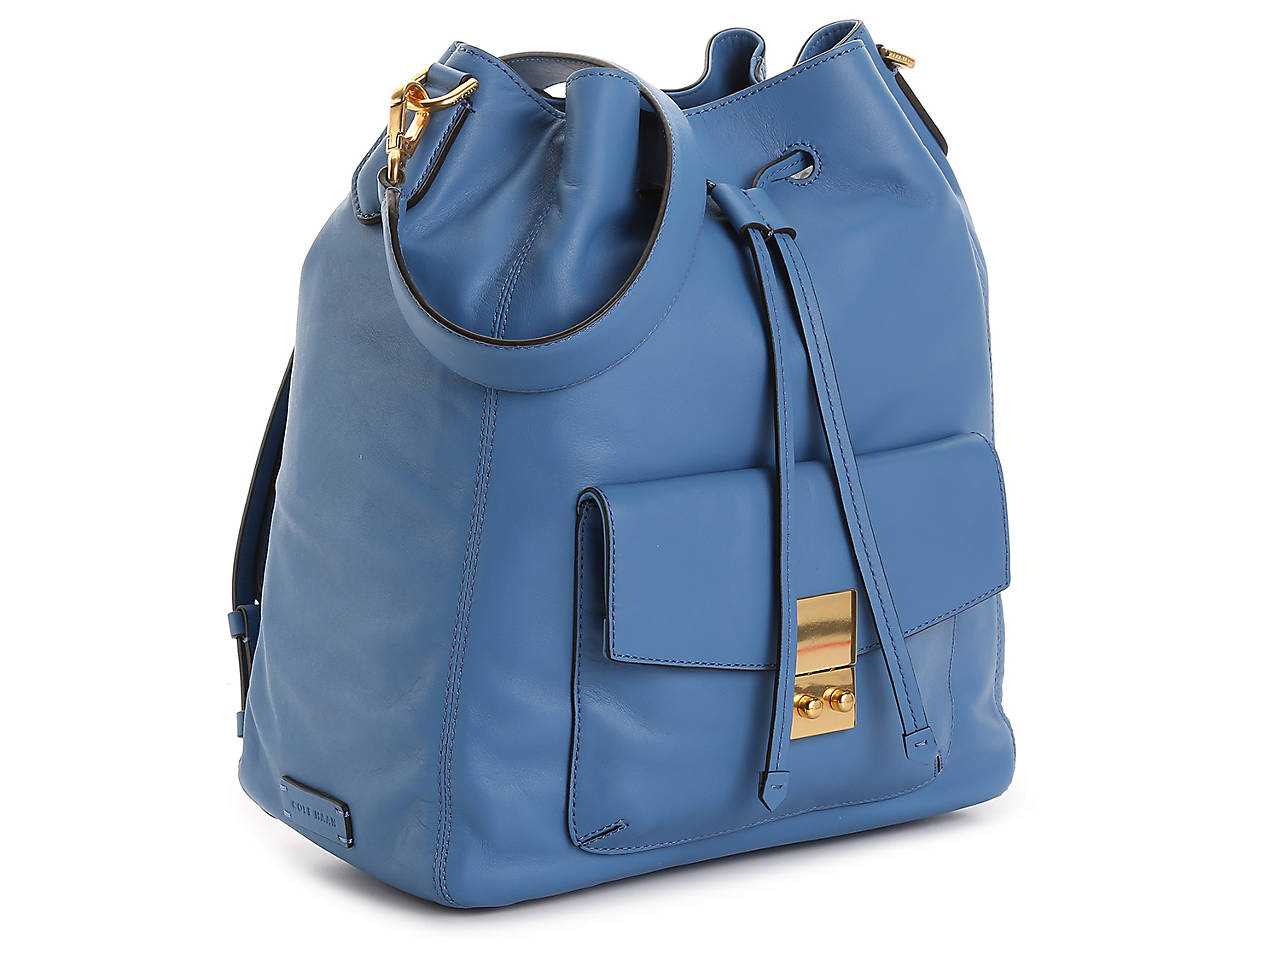 012e43cfc083 Cole Haan Allana Leather Backpack Women s Handbags   Accessories